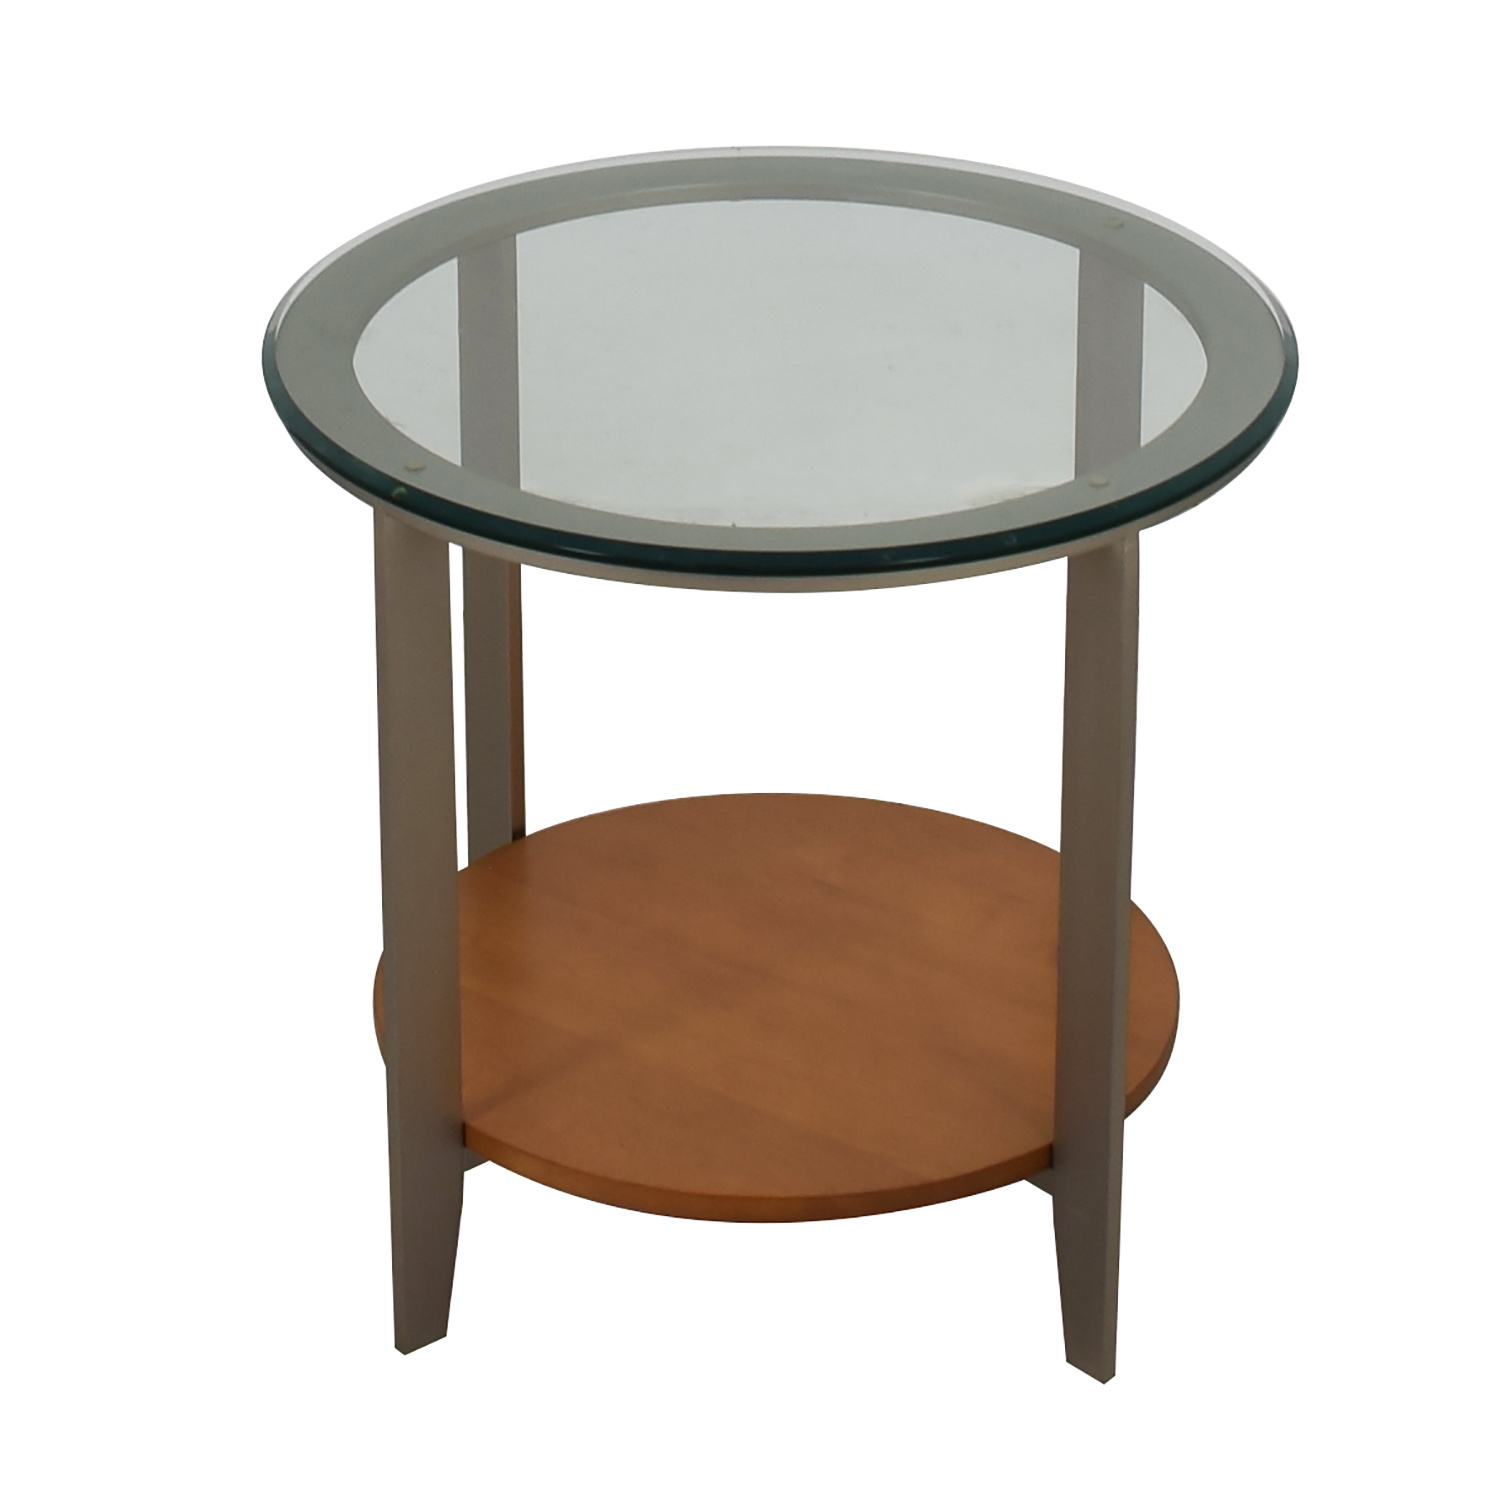 buy Ethan Allen Round Glass and Wood End Table Ethan Allen